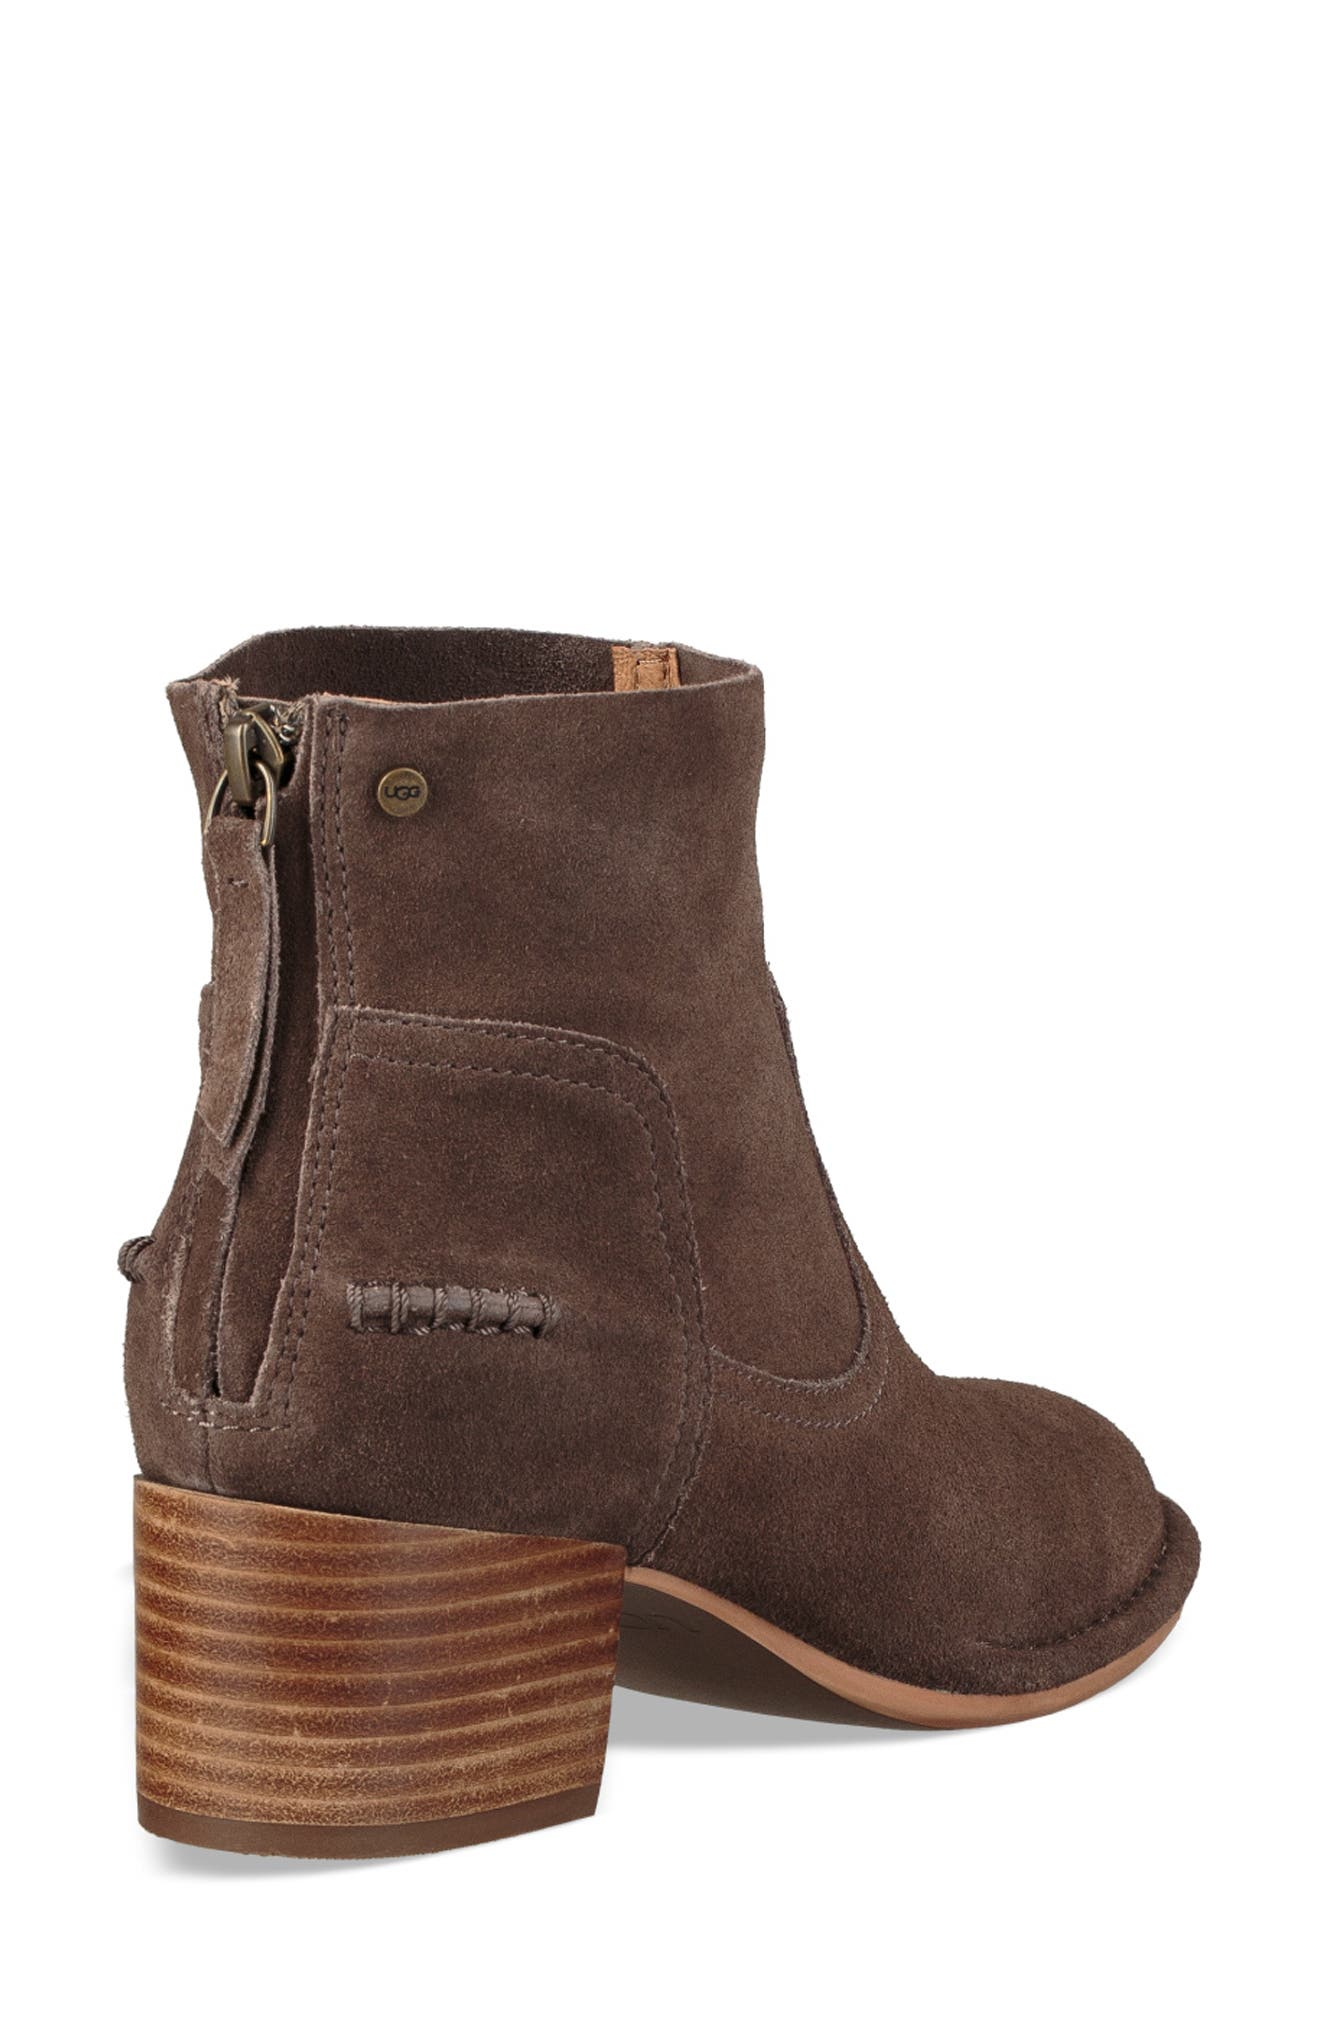 Bandera Bootie,                             Alternate thumbnail 2, color,                             MYSTERIOUS